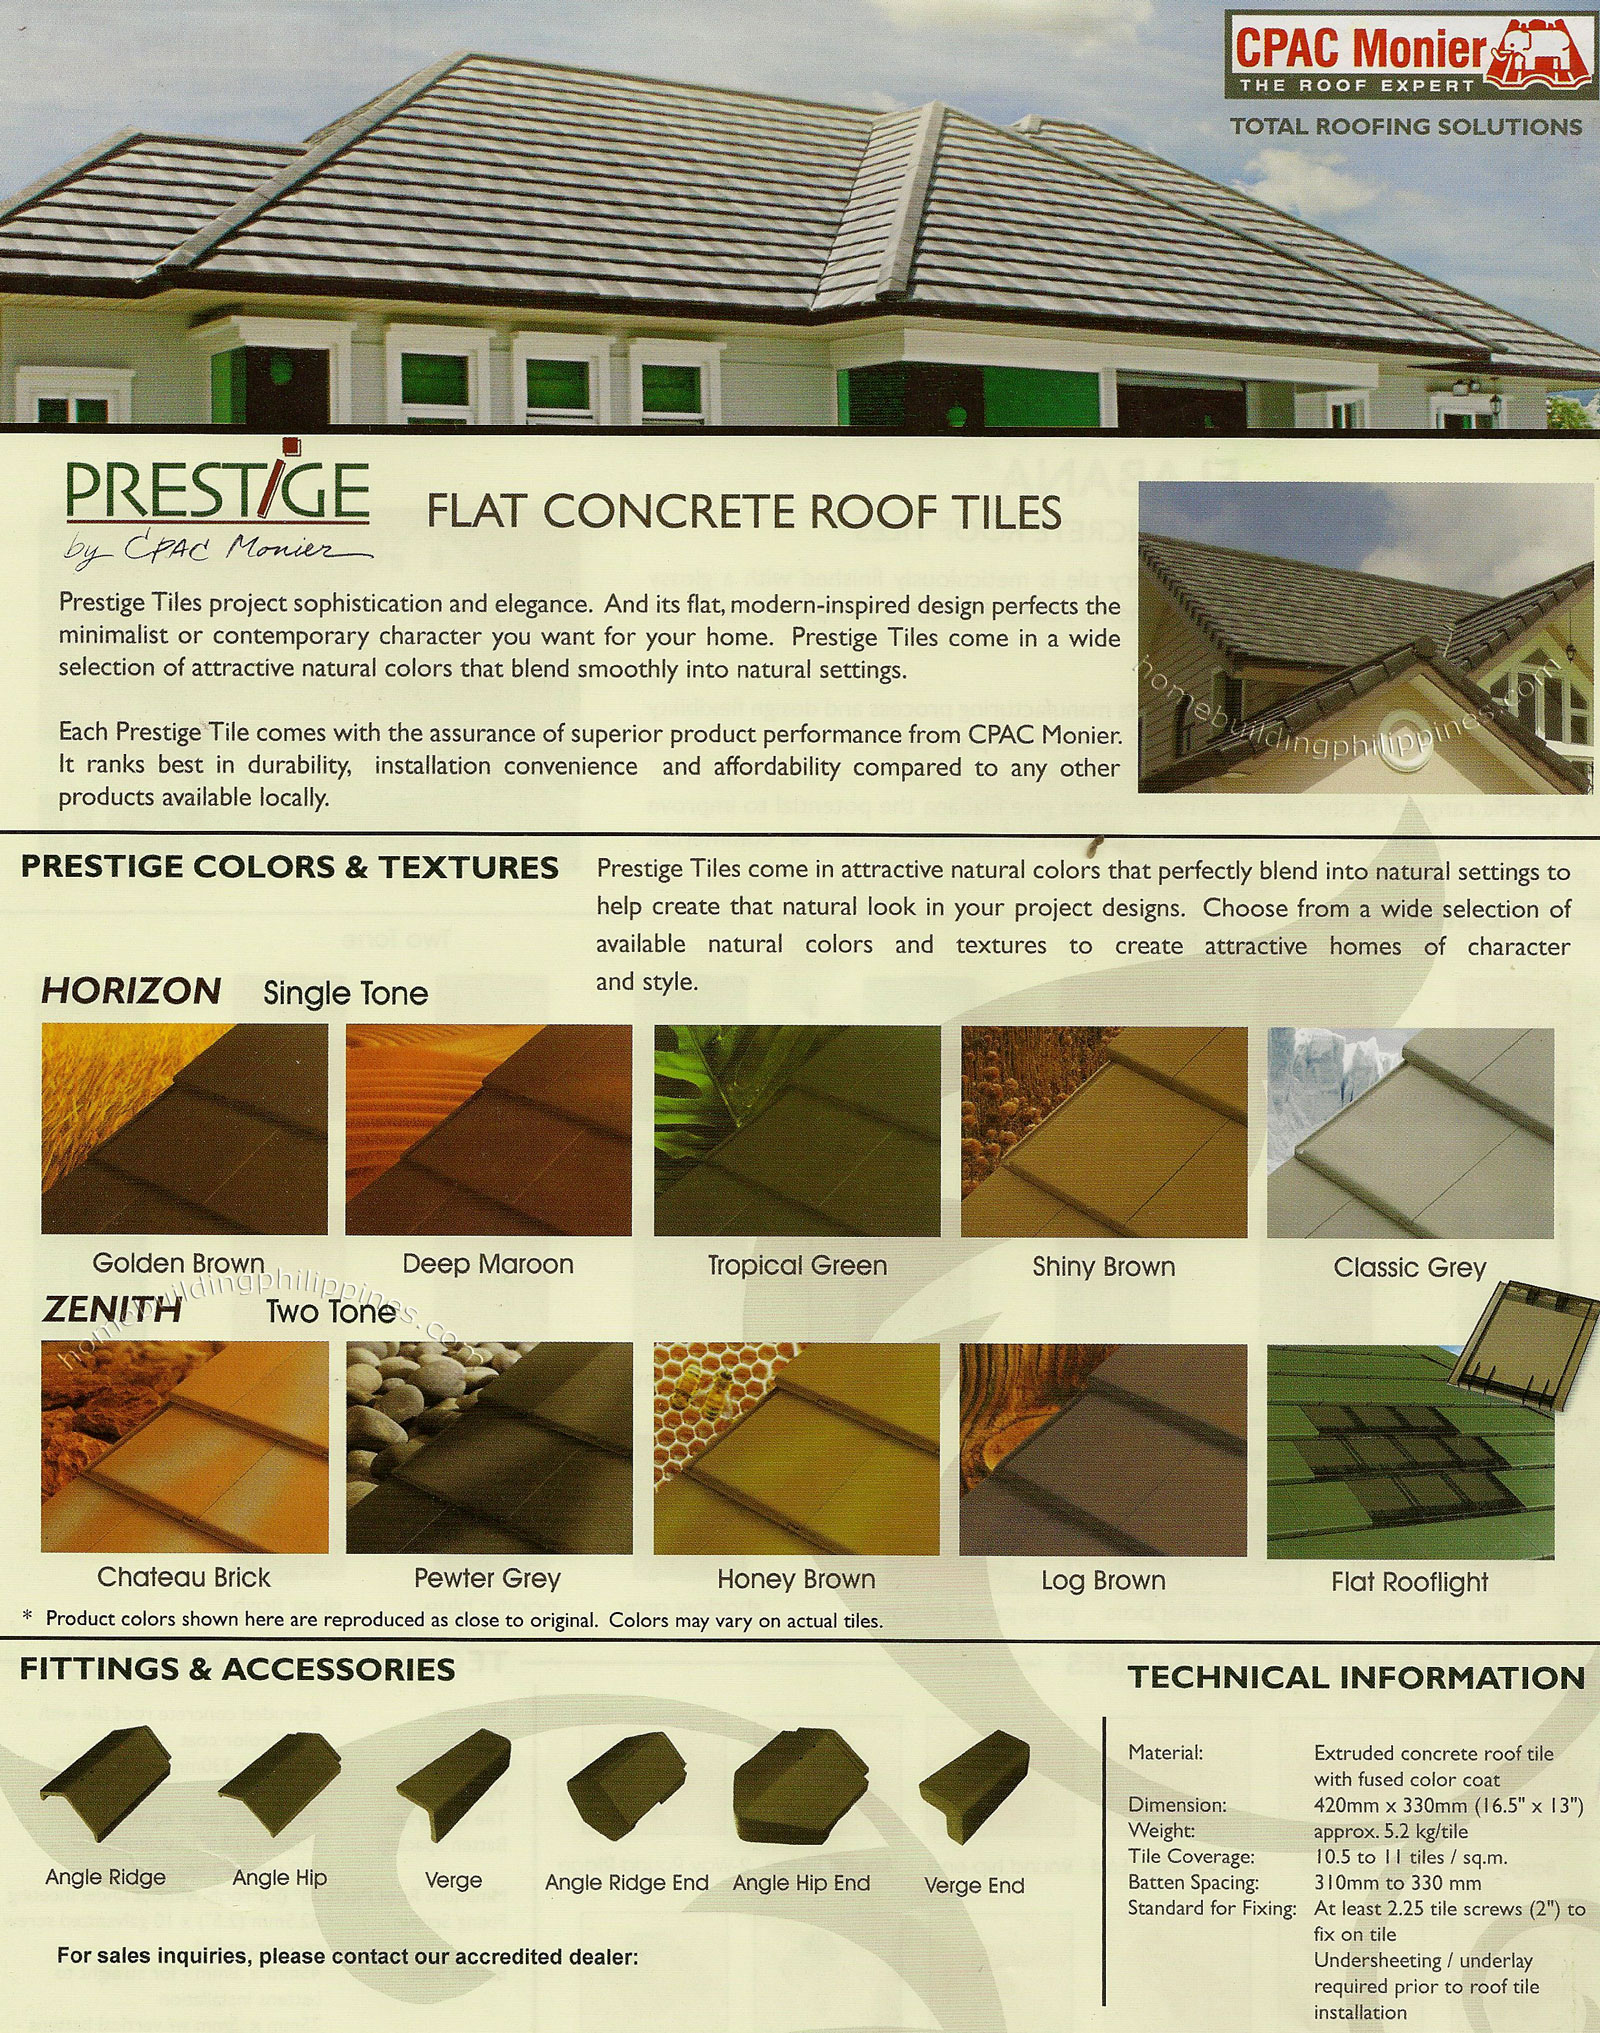 Prestige Flat Concrete Roof Tiles